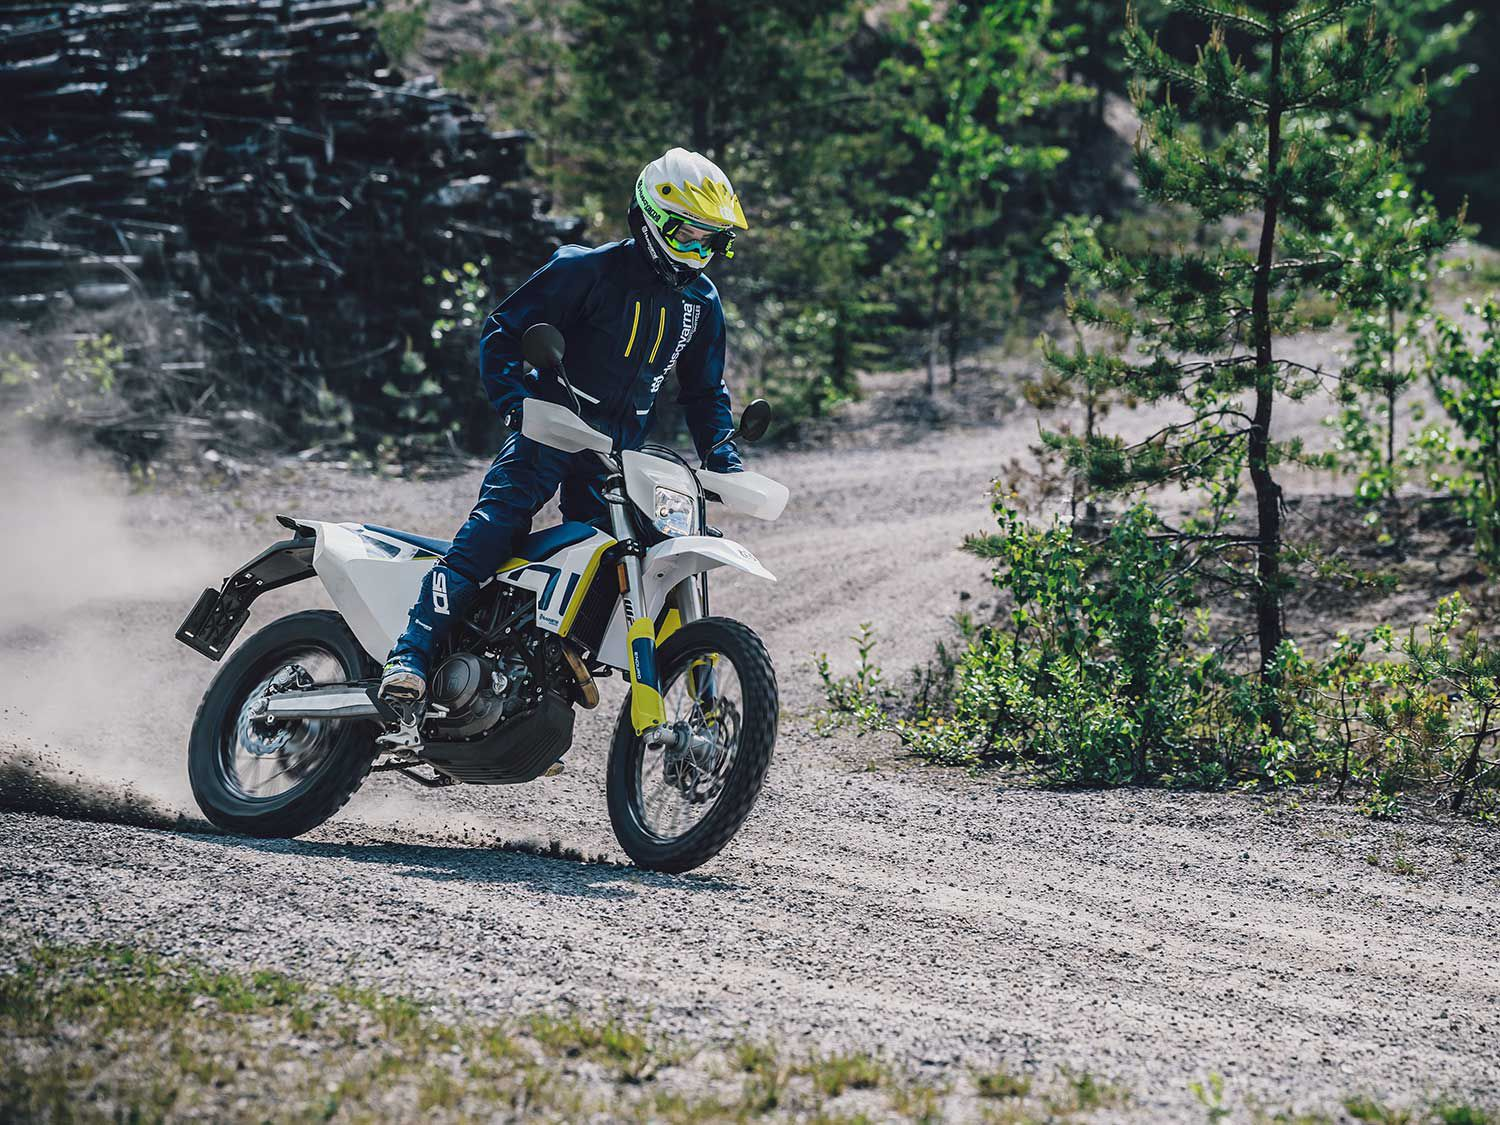 <h2>2020 Husqvarna 701 Enduro</h2> </br> The 2020 Husqvarna 701 Enduro features electronic rider aids such as cornering ABS, lean-angle-sensitive traction control, two ride modes, and Easy Shift function.